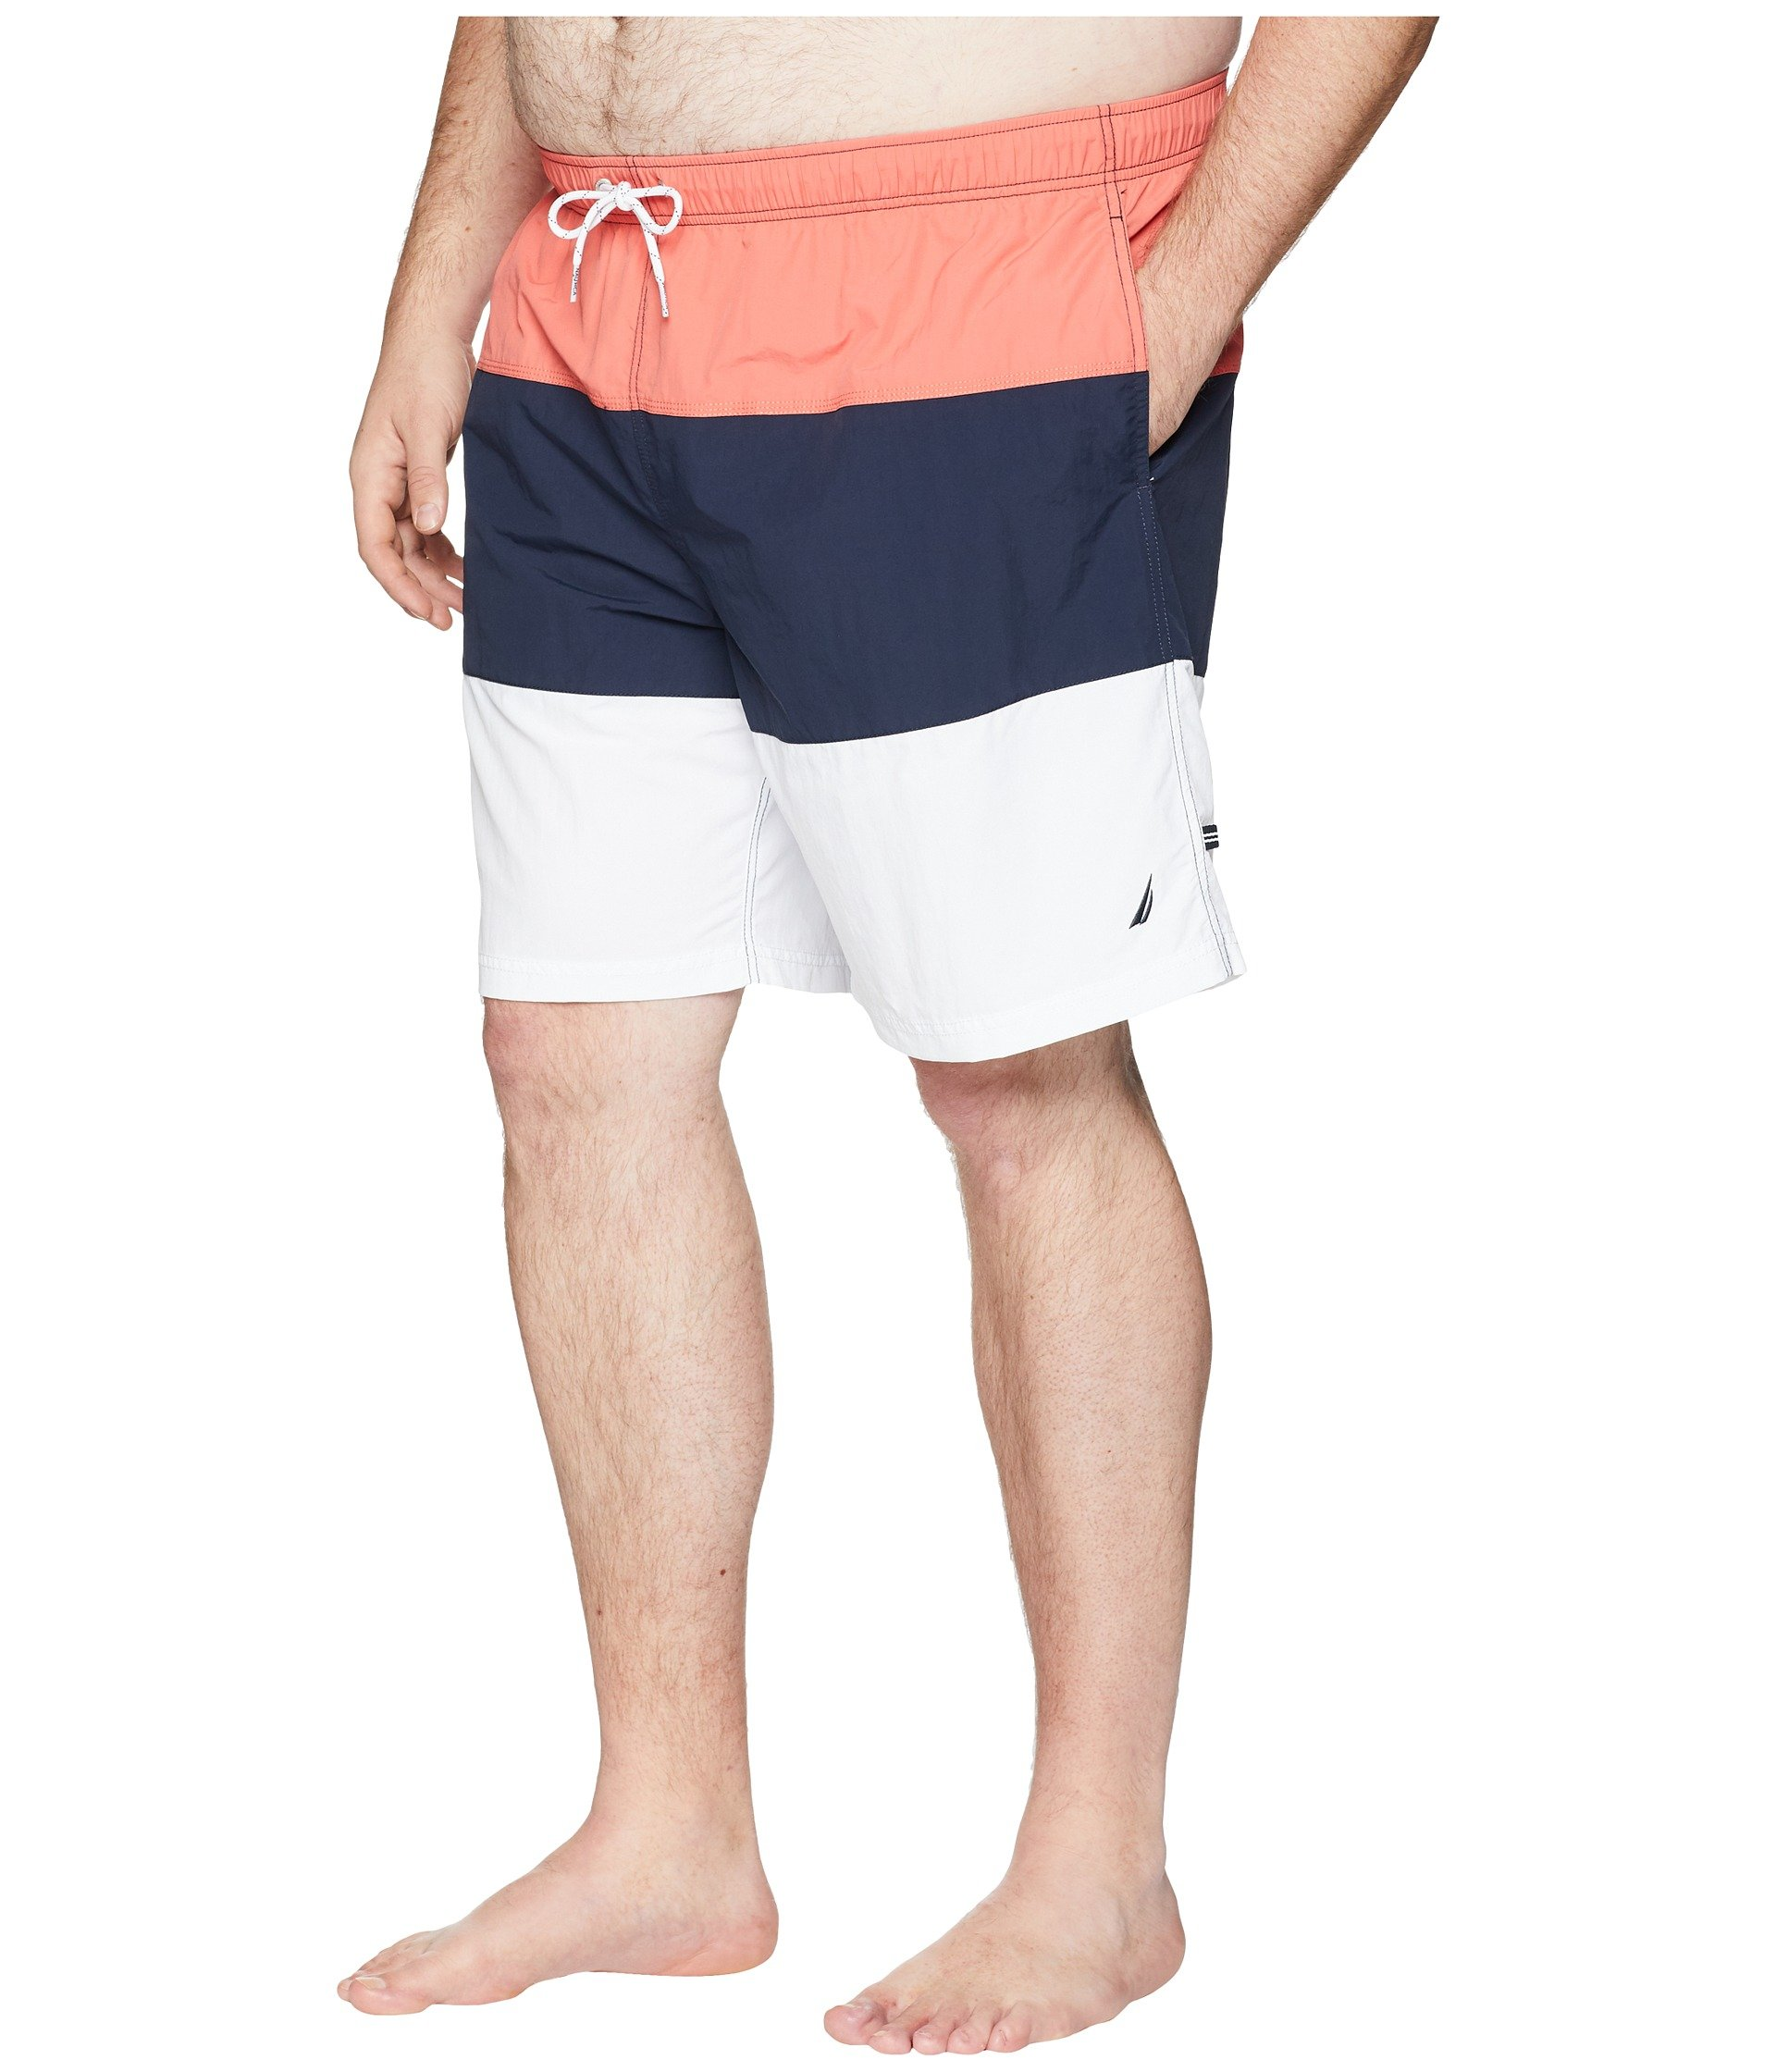 Nautica amp; Block Big Trunk Spiced Tall Coral Tricolor rZwwzRf18q